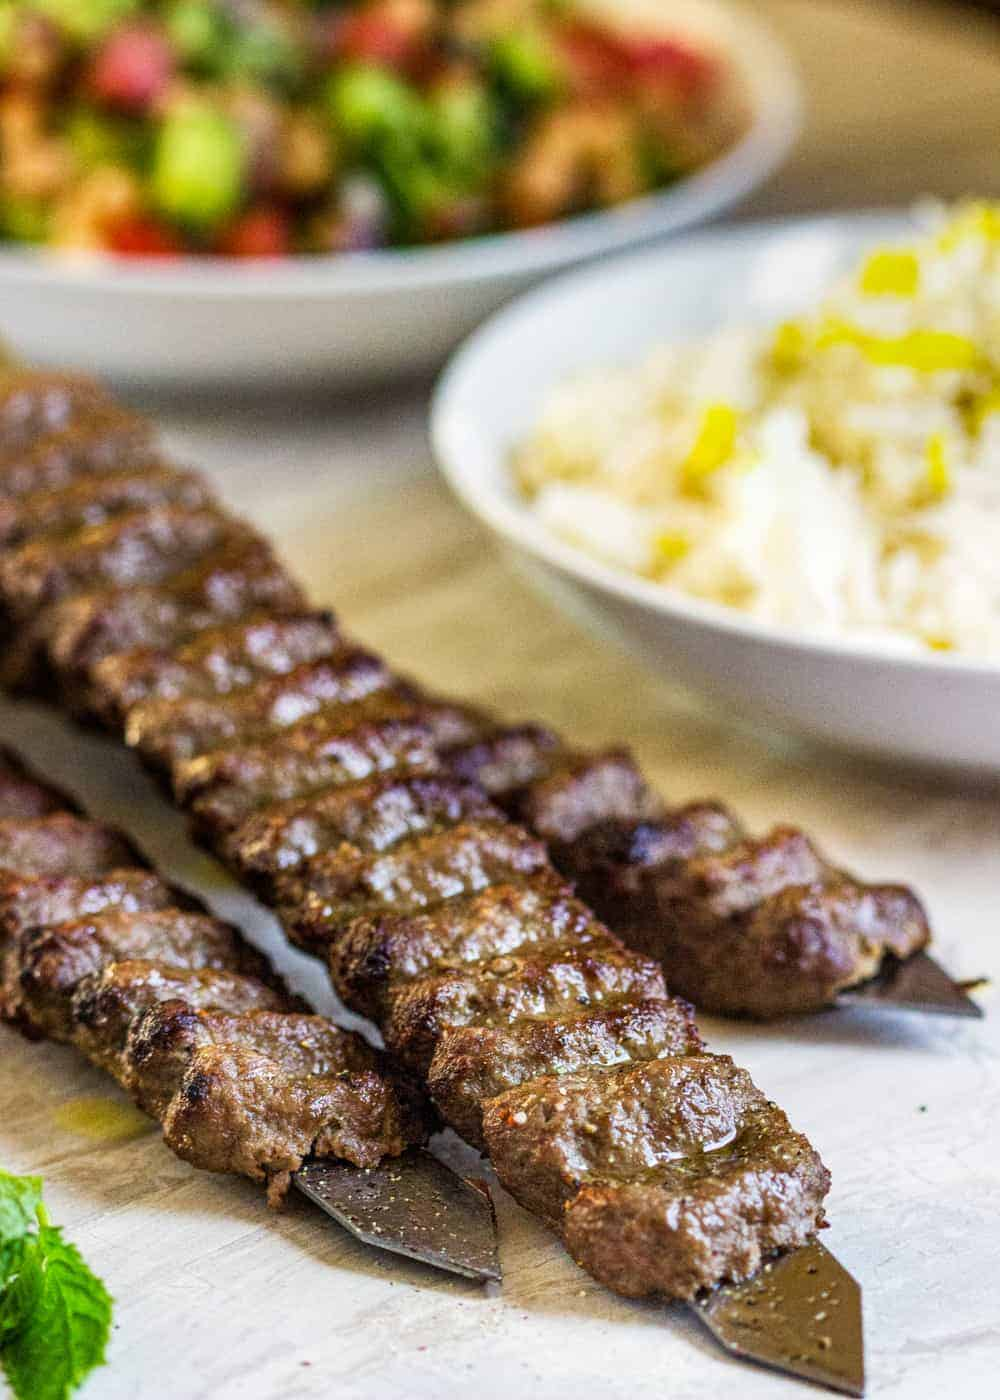 Koobideh kabobs in the foreground and bowls of rice and salad in the background